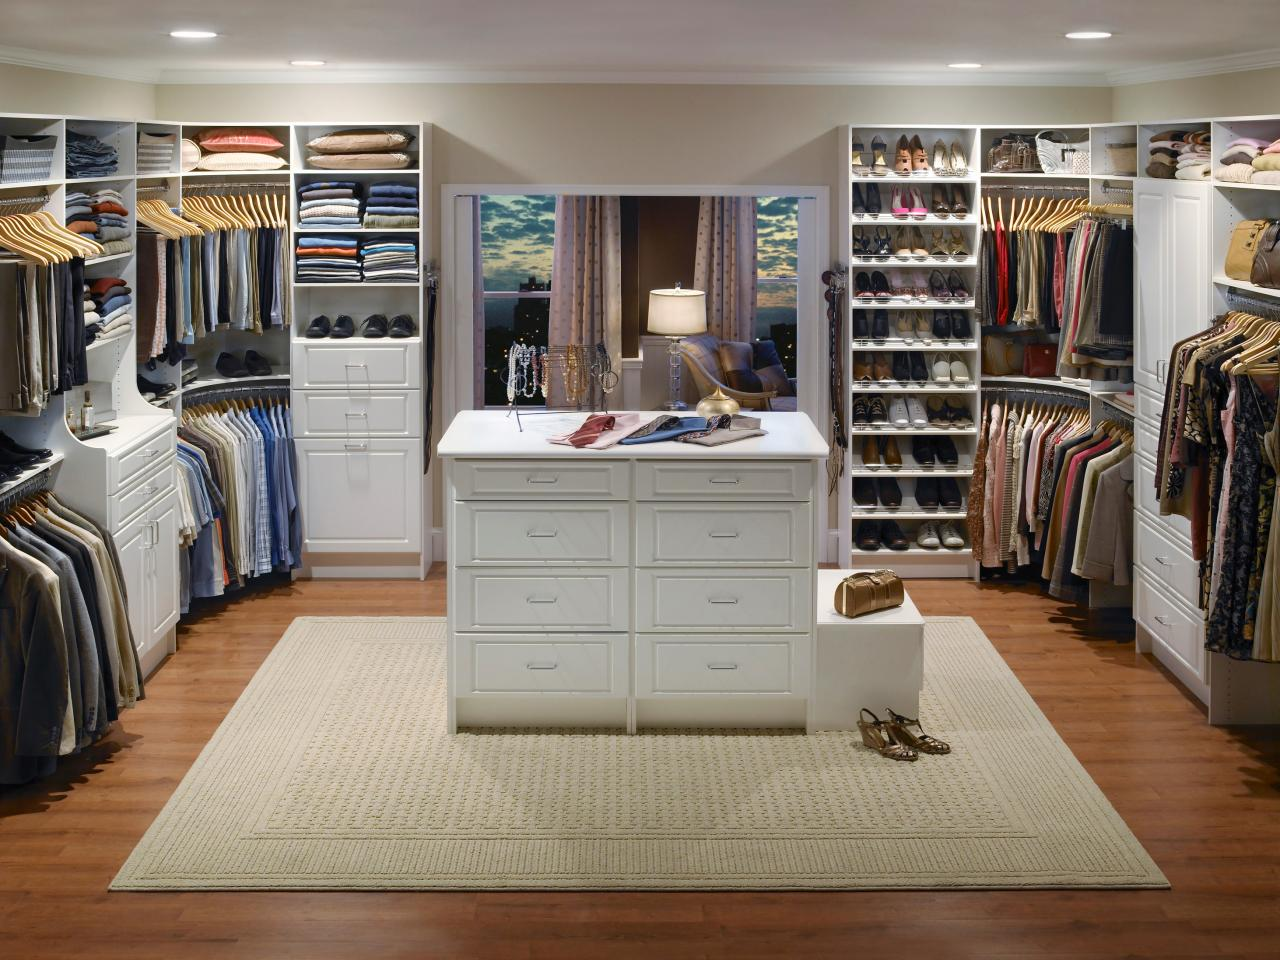 Bedroom Closet Ideas And Options HGTV - Master bedroom closet organization ideas